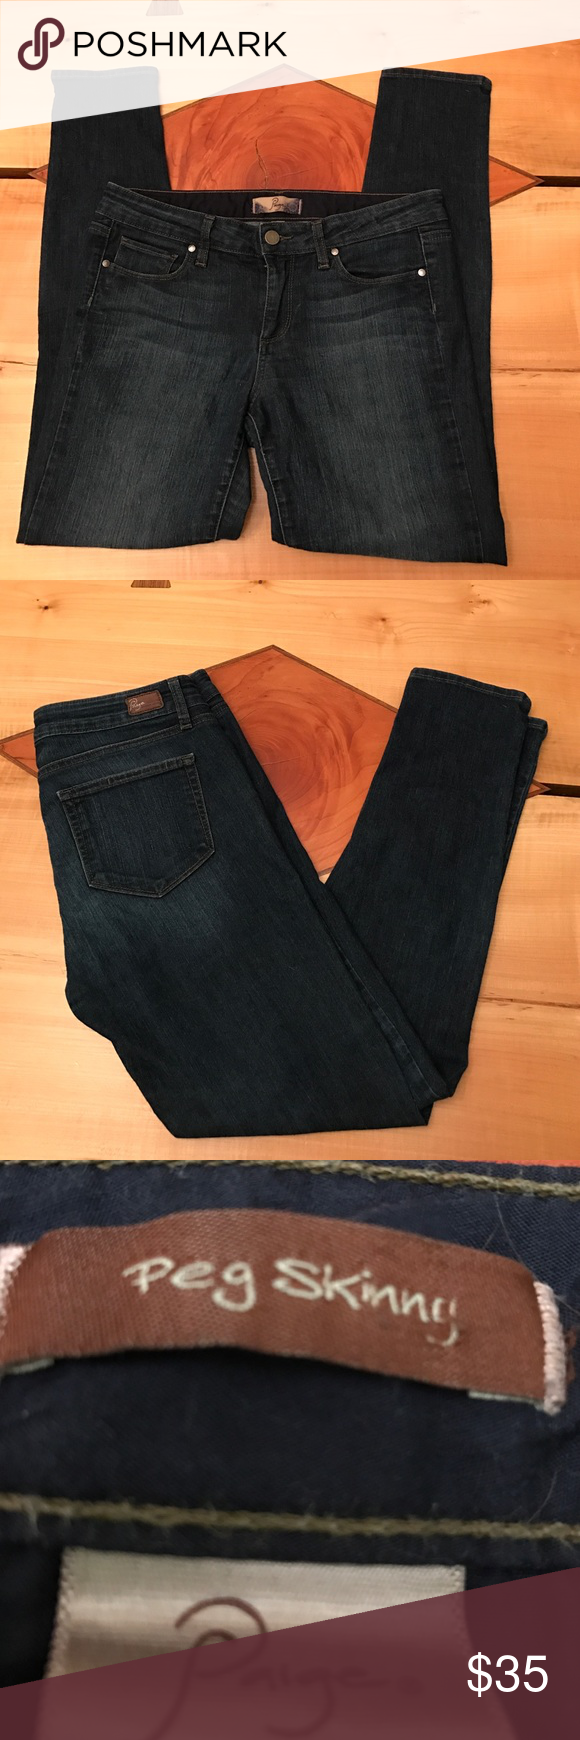 Paige Peg Skinny Jeans Paige Peg Skinny Jeans. Size 29. Great condition, minimal wear. Paige Jeans Pants Skinny